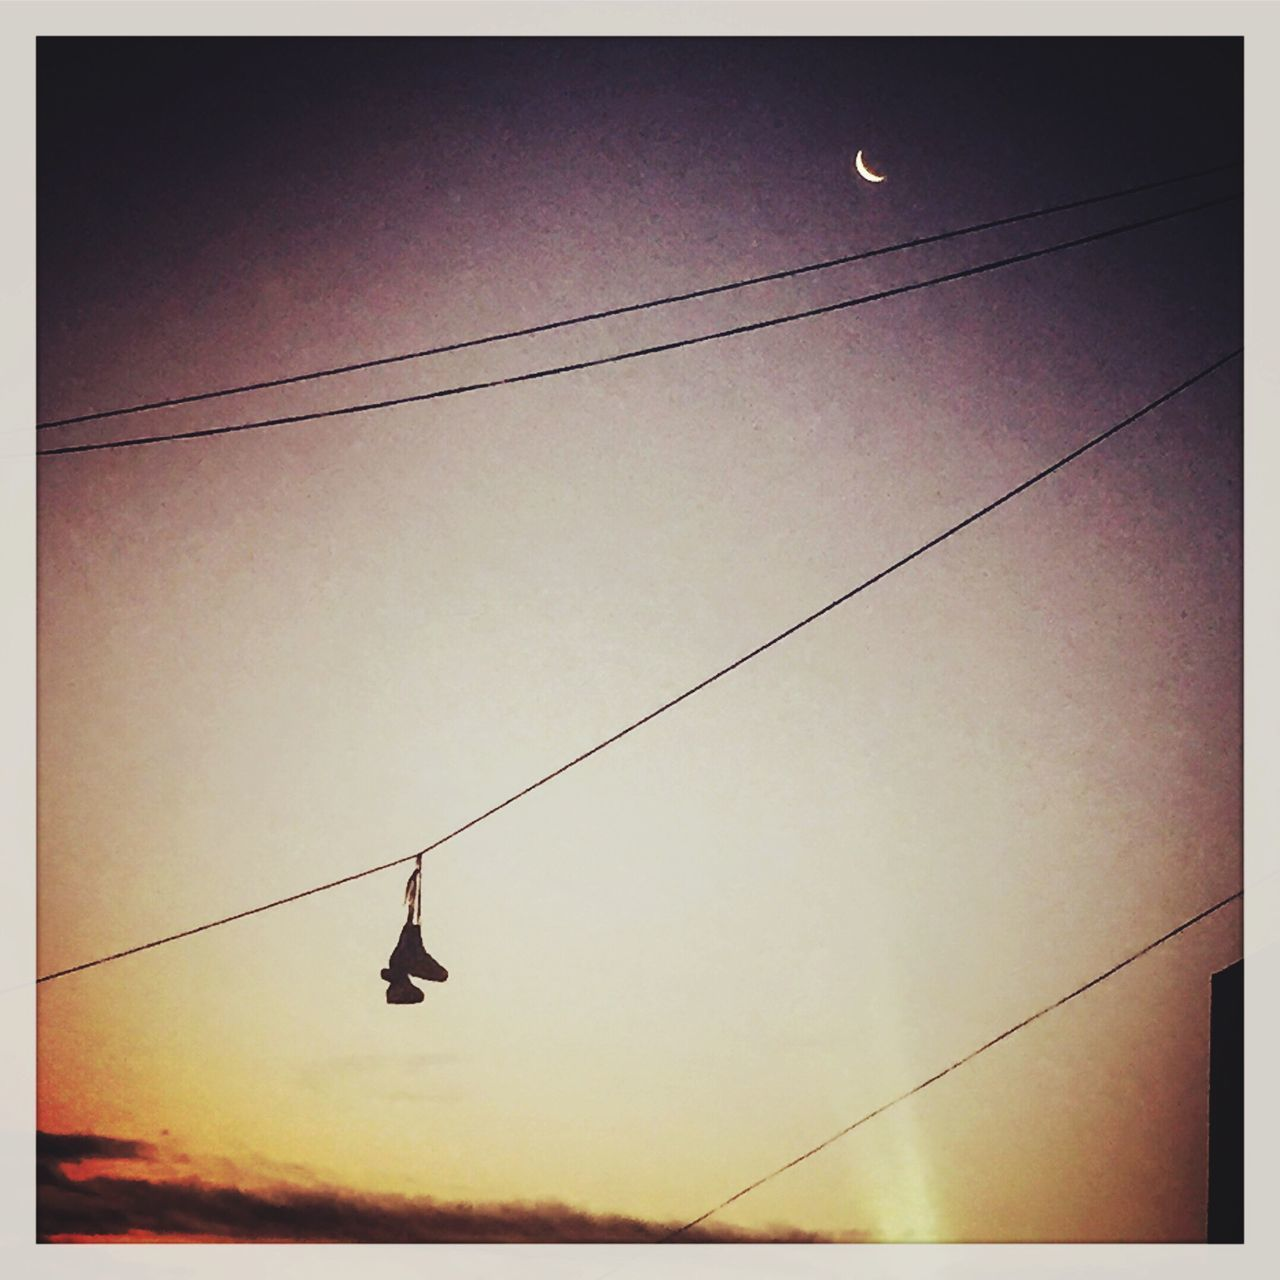 hanging, rope, cable, real people, silhouette, one person, sunset, outdoors, nature, sky, clear sky, low angle view, full length, day, extreme sports, beauty in nature, people